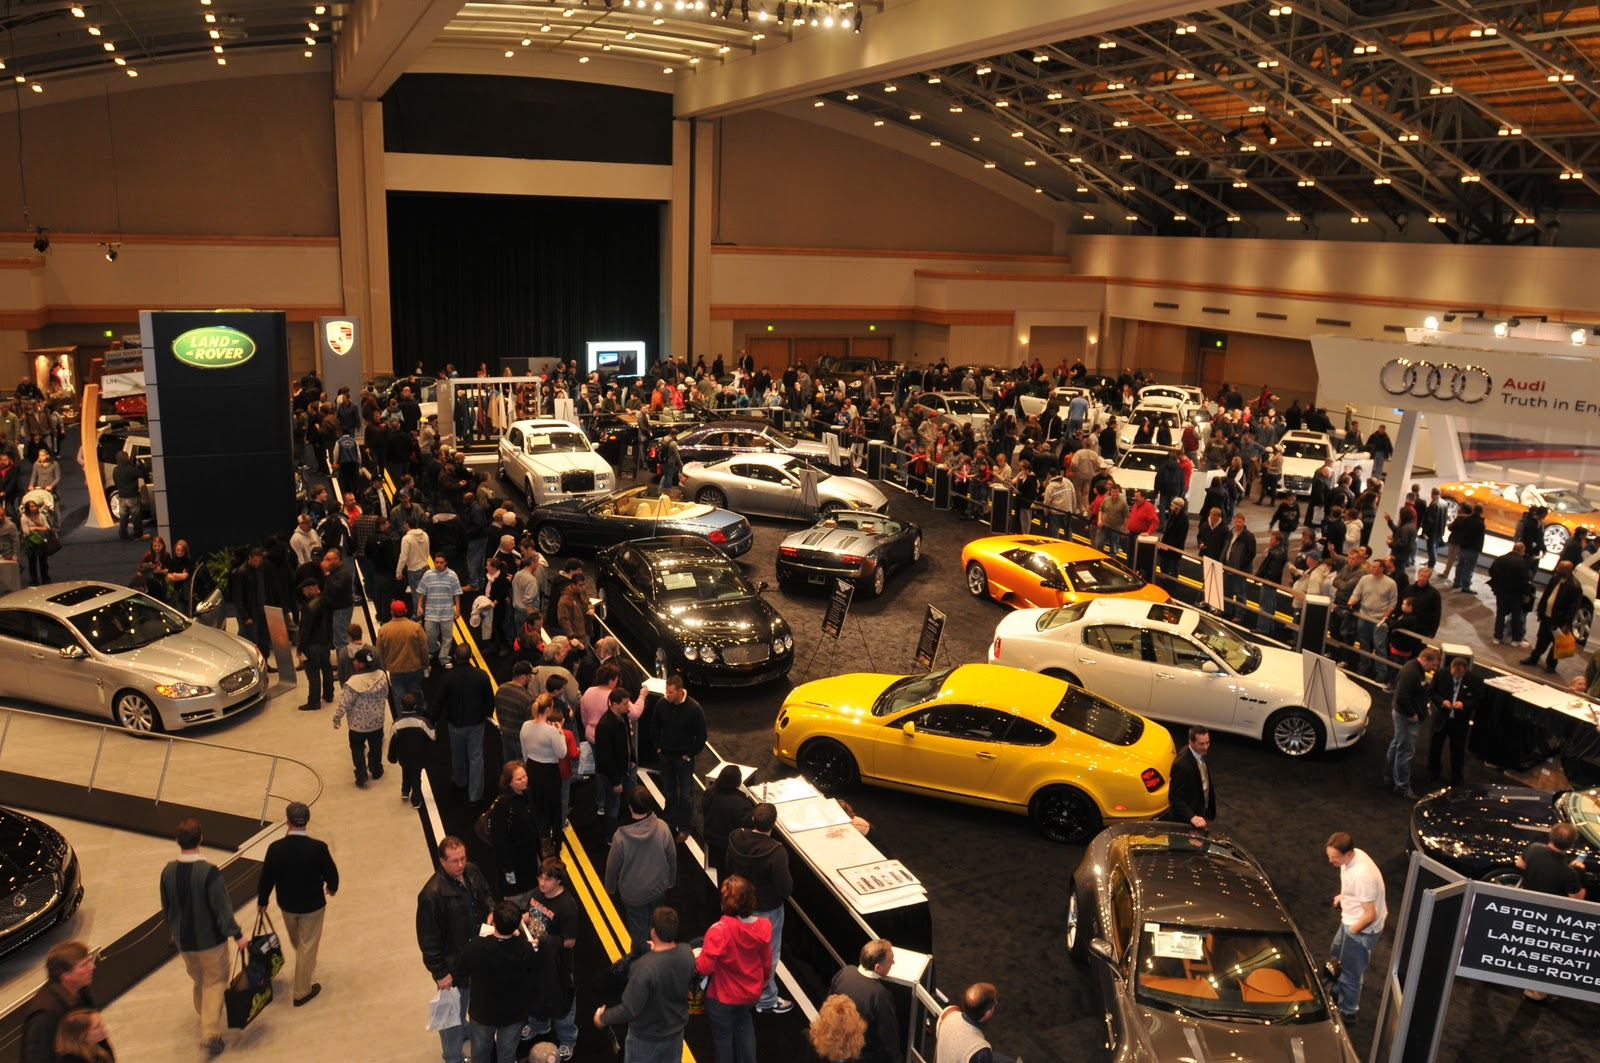 CLOSEDGiveaway Tickets To The Philadelphia Auto Show Frugal - Car show giveaways